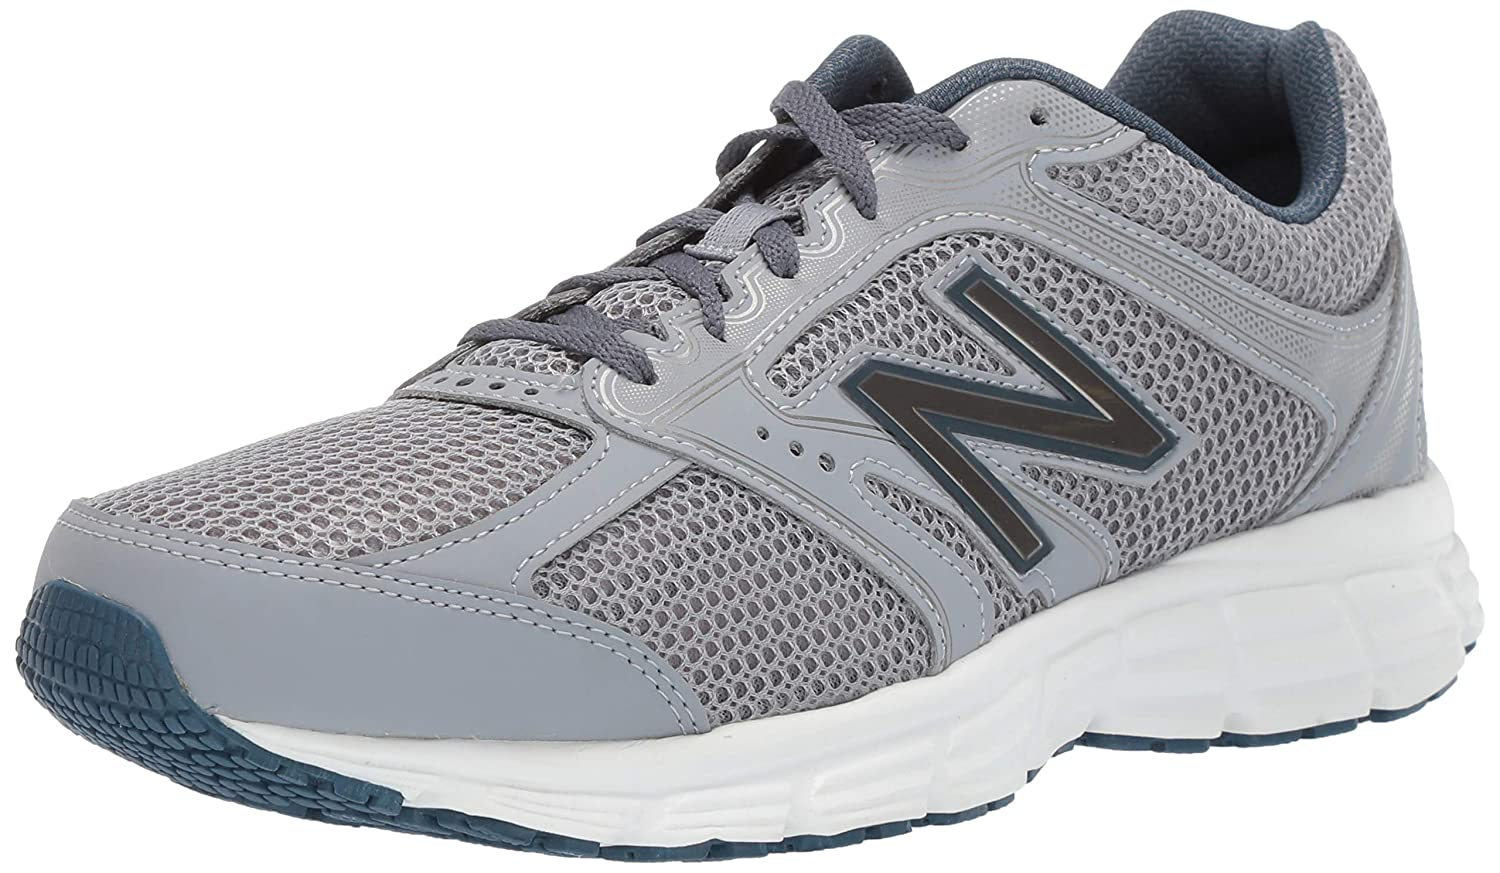 New Balance Men s 460v2 Cushioning Running Shoe, steel north sea, 15 W US